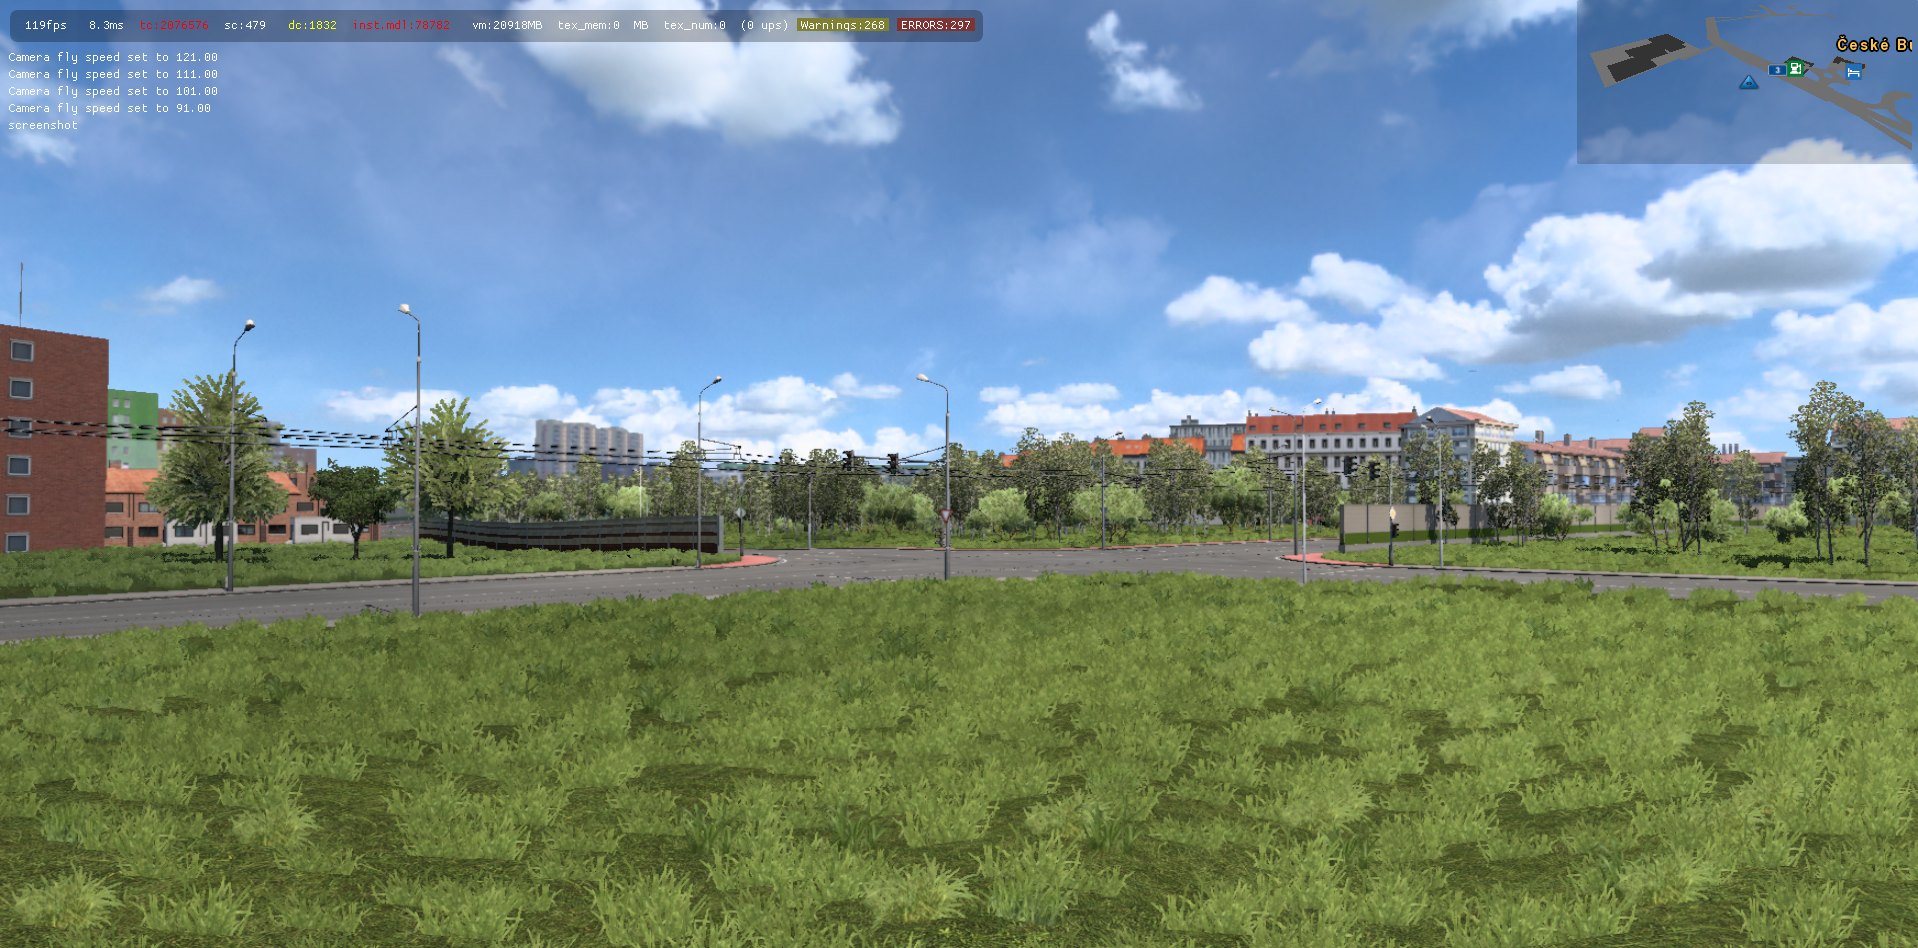 ets2_20210815_221302_00.png